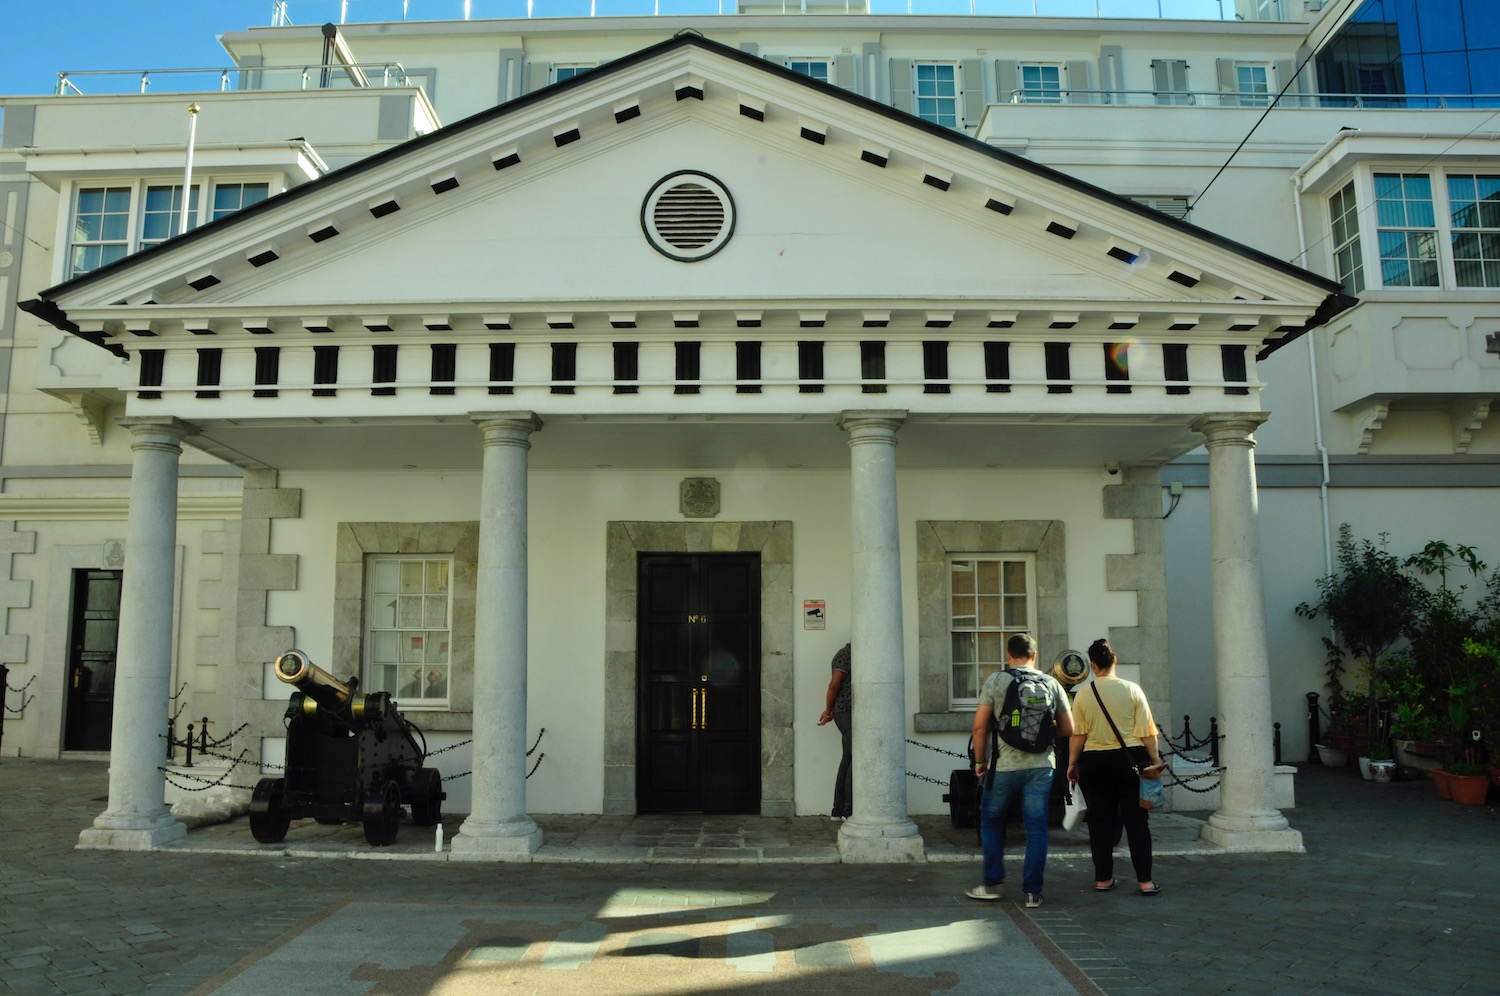 No. 6 - Gibraltar's 10 Downing Street where the Chief Minister spends his working day, guarded by gleaming cannons. A photo stop is de rigeur.